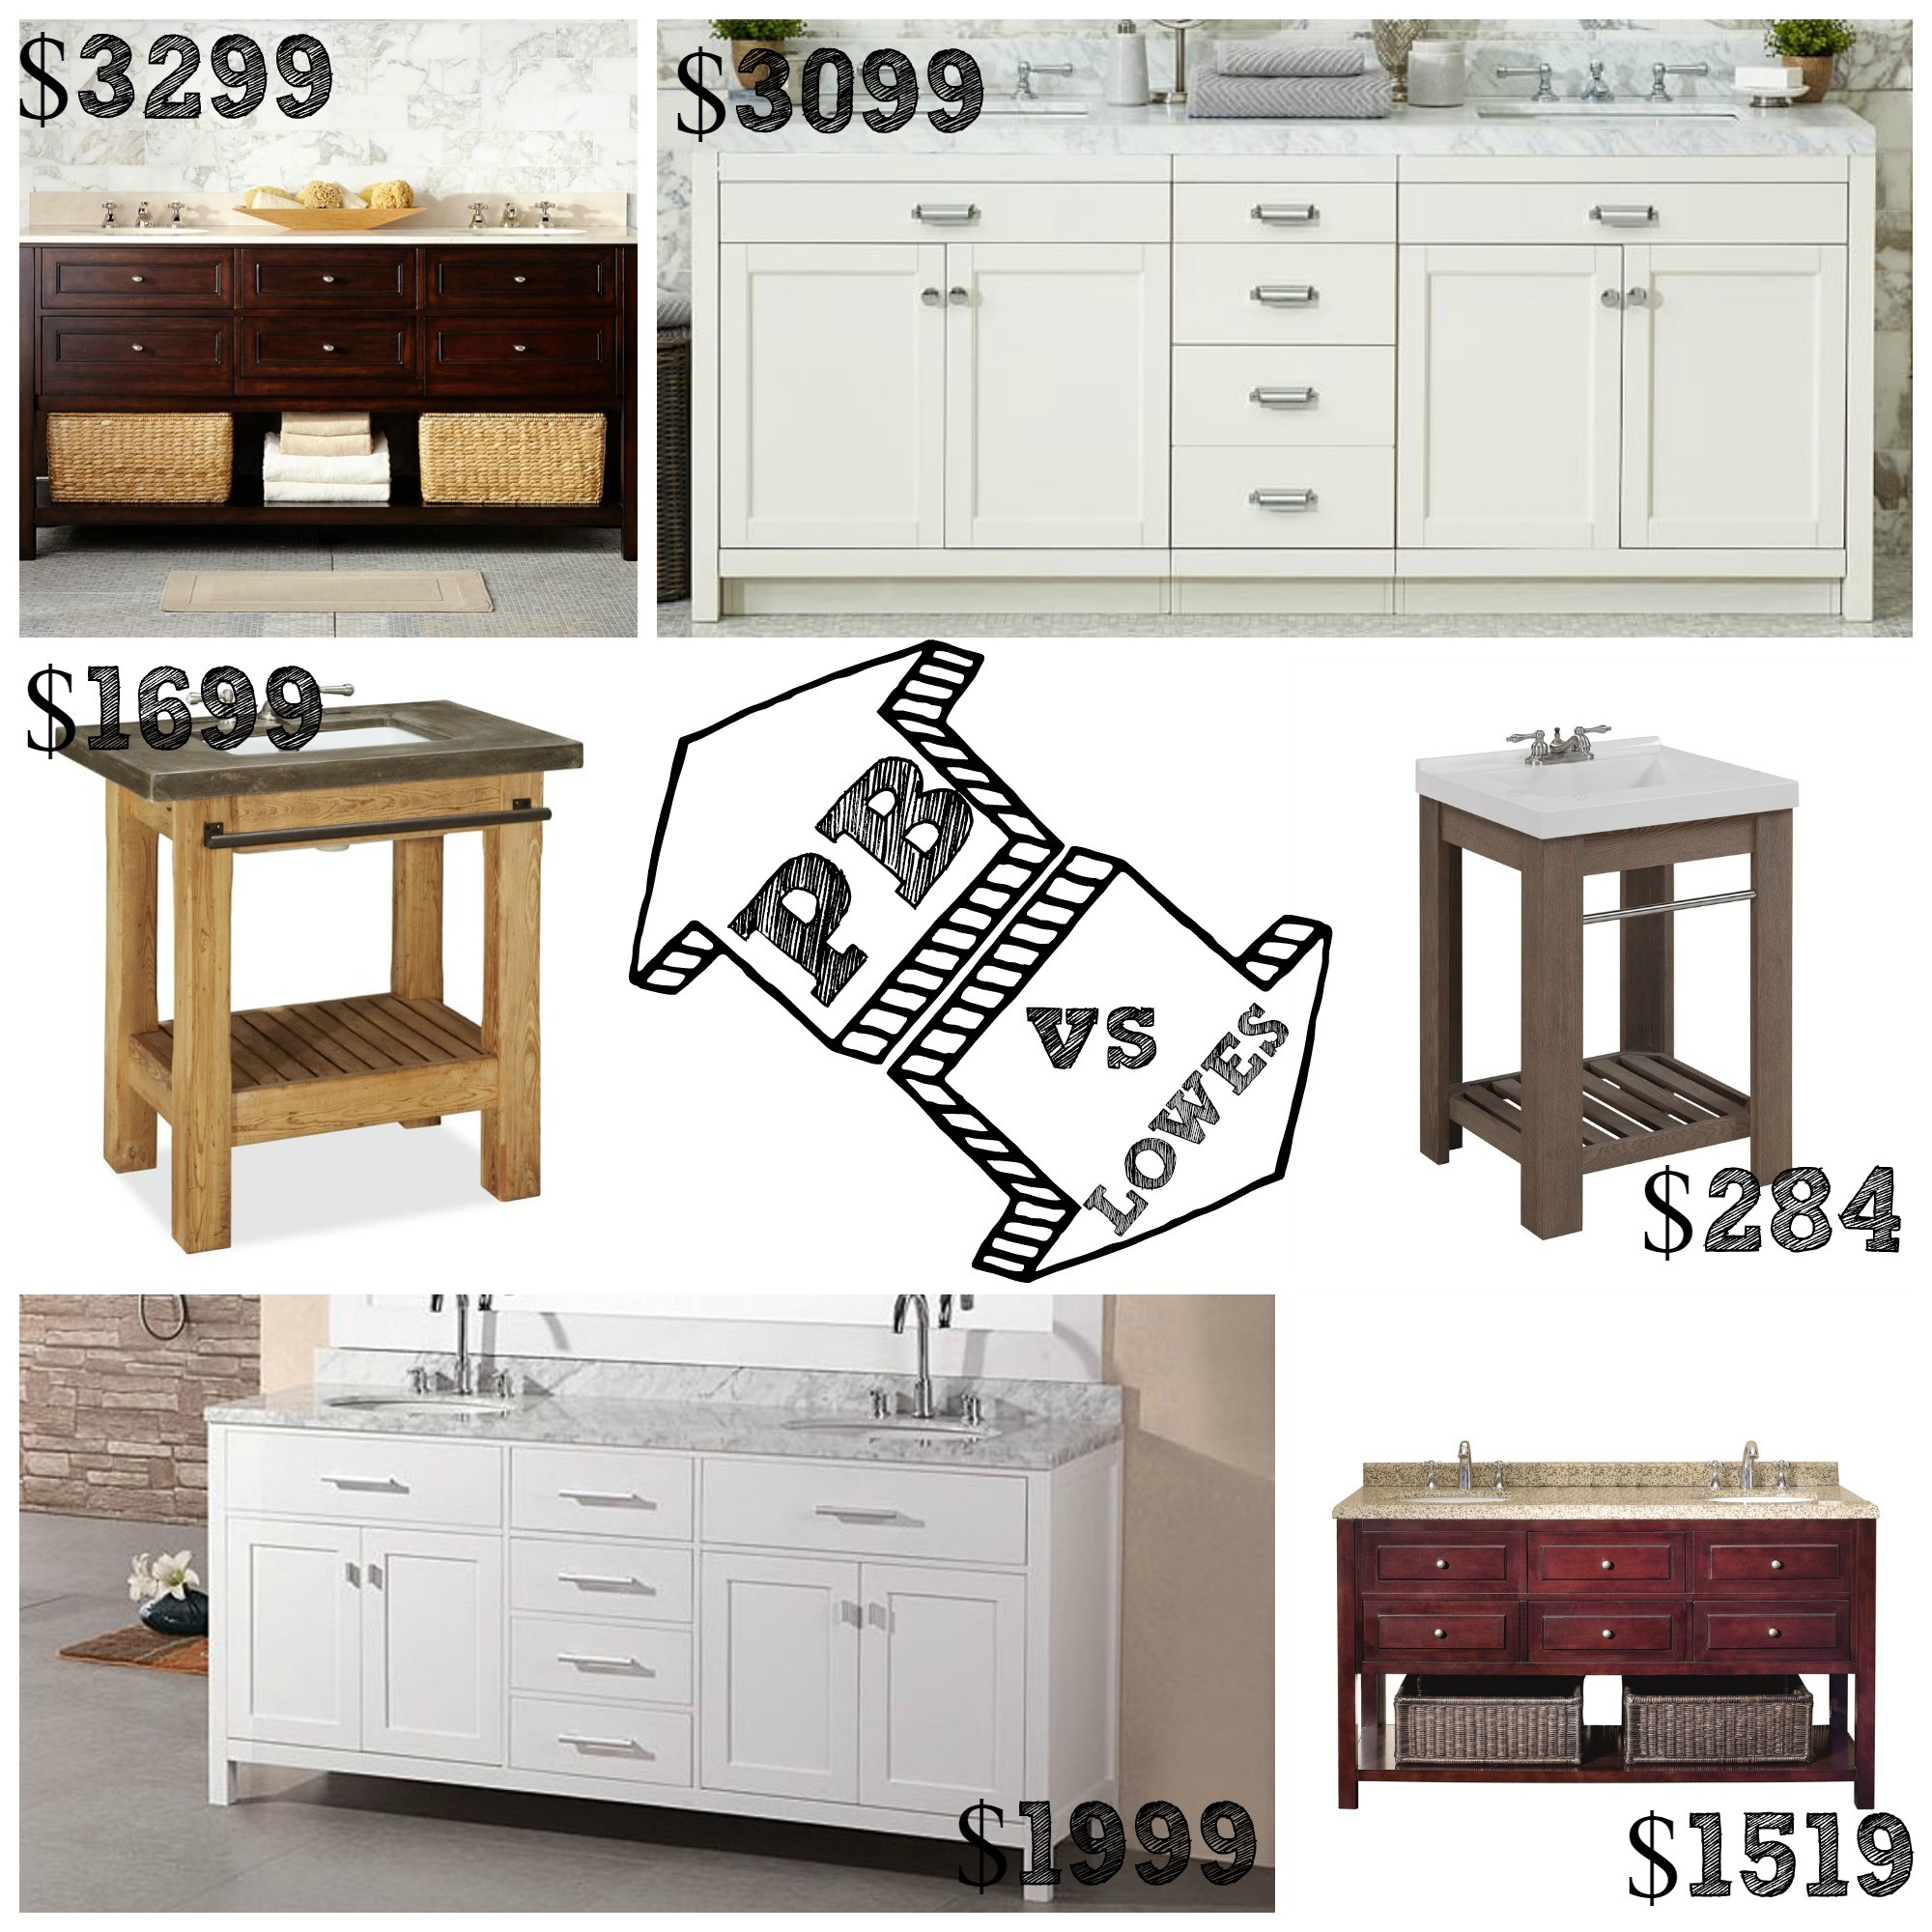 Decor Look Alikes | Pottery Barn vs Lowes Bathroom Vanities